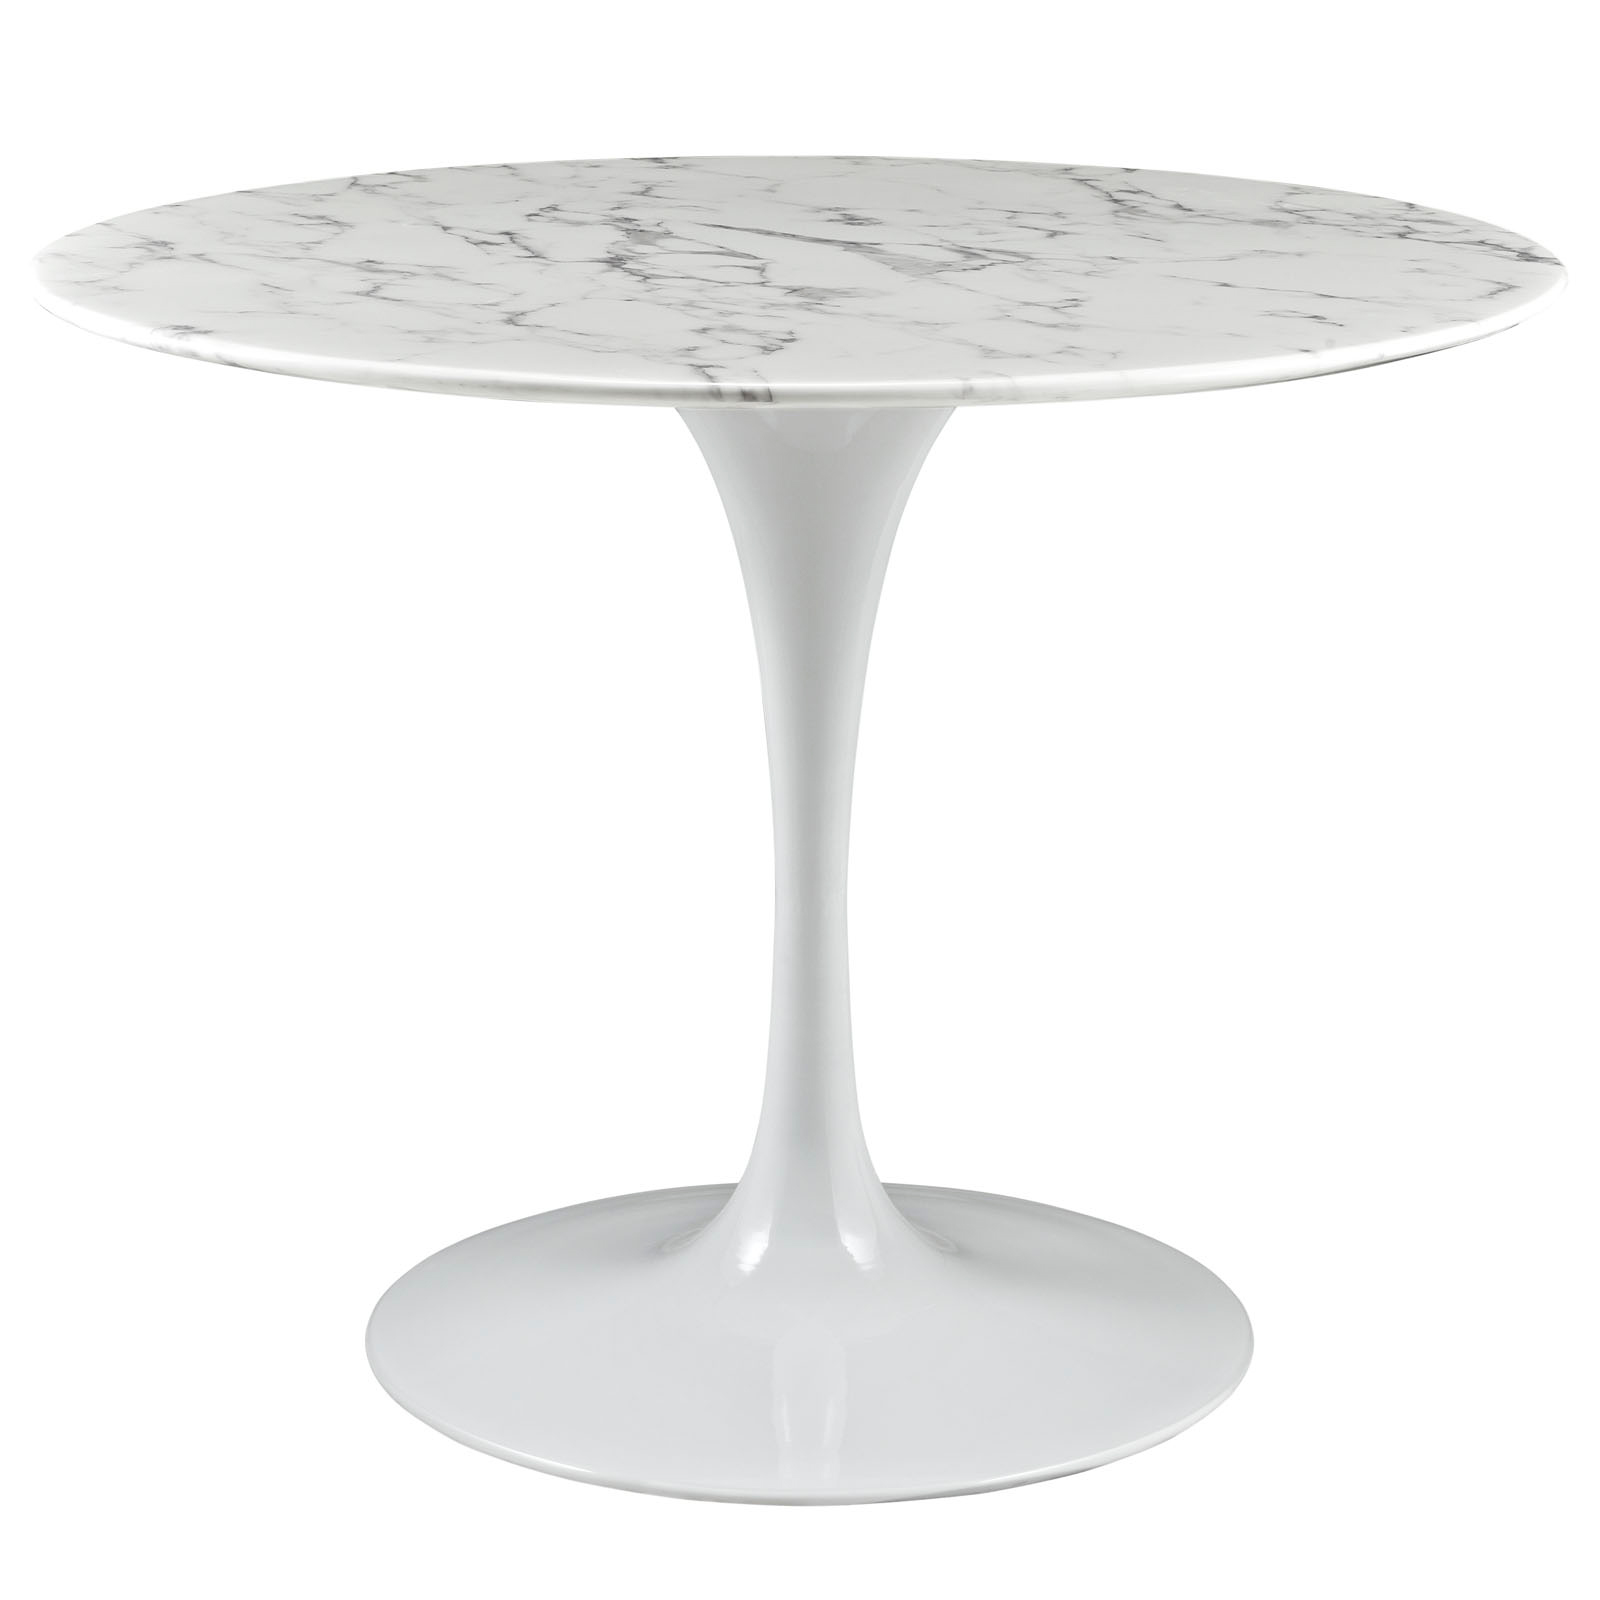 Anabel 40in Artificial Marbe Dining Table1